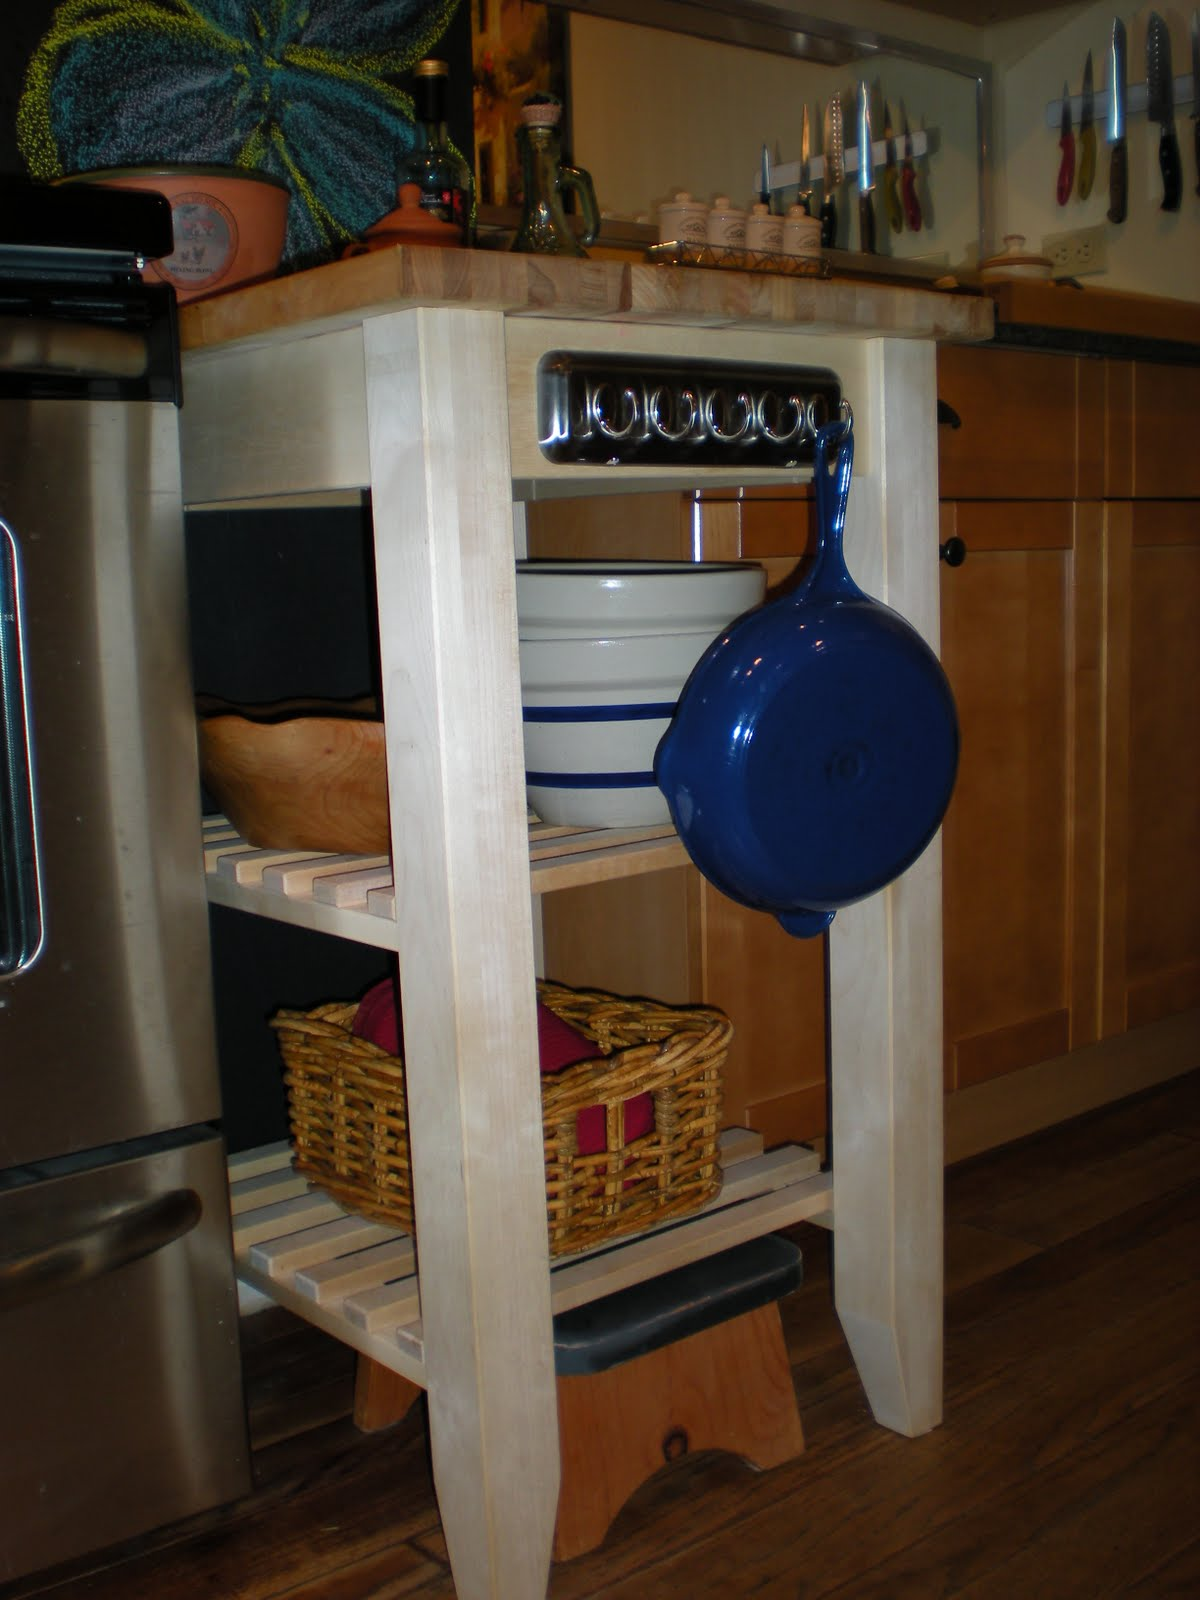 Exquisite microwave cart ikea for kitchen furniture design with microwave cart with storage ikea